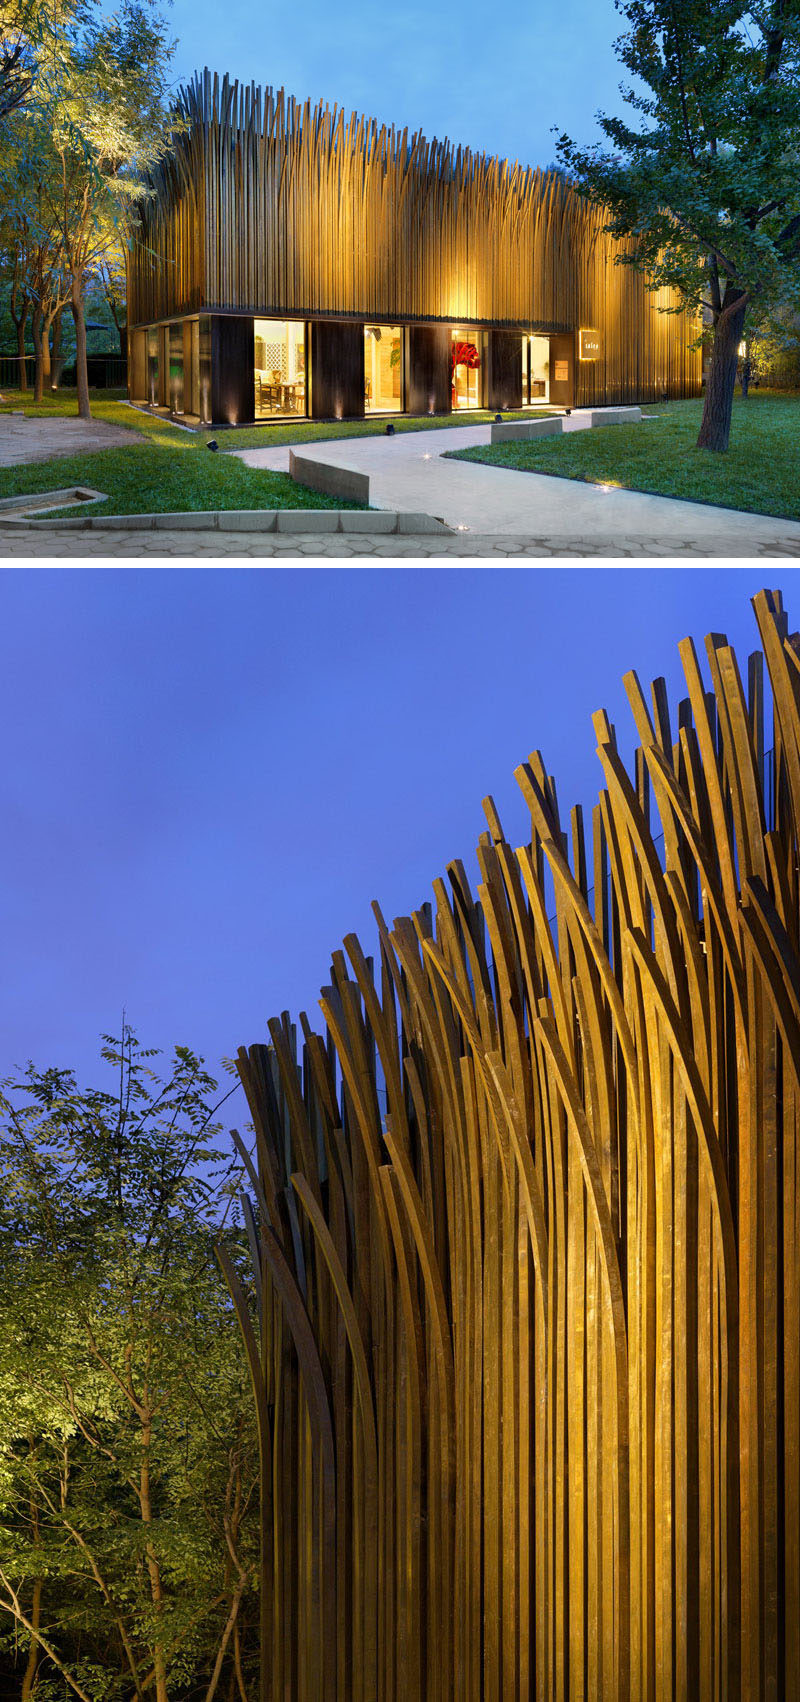 "Exterior Design Ideas - 15 Buildings That Have Unique And Creative Facades // 1200 pieces of brass tubing were turned into ""grass leaves"" that oxidize and naturally change color with the seasons, creating an ever changing facade on the pavilion."